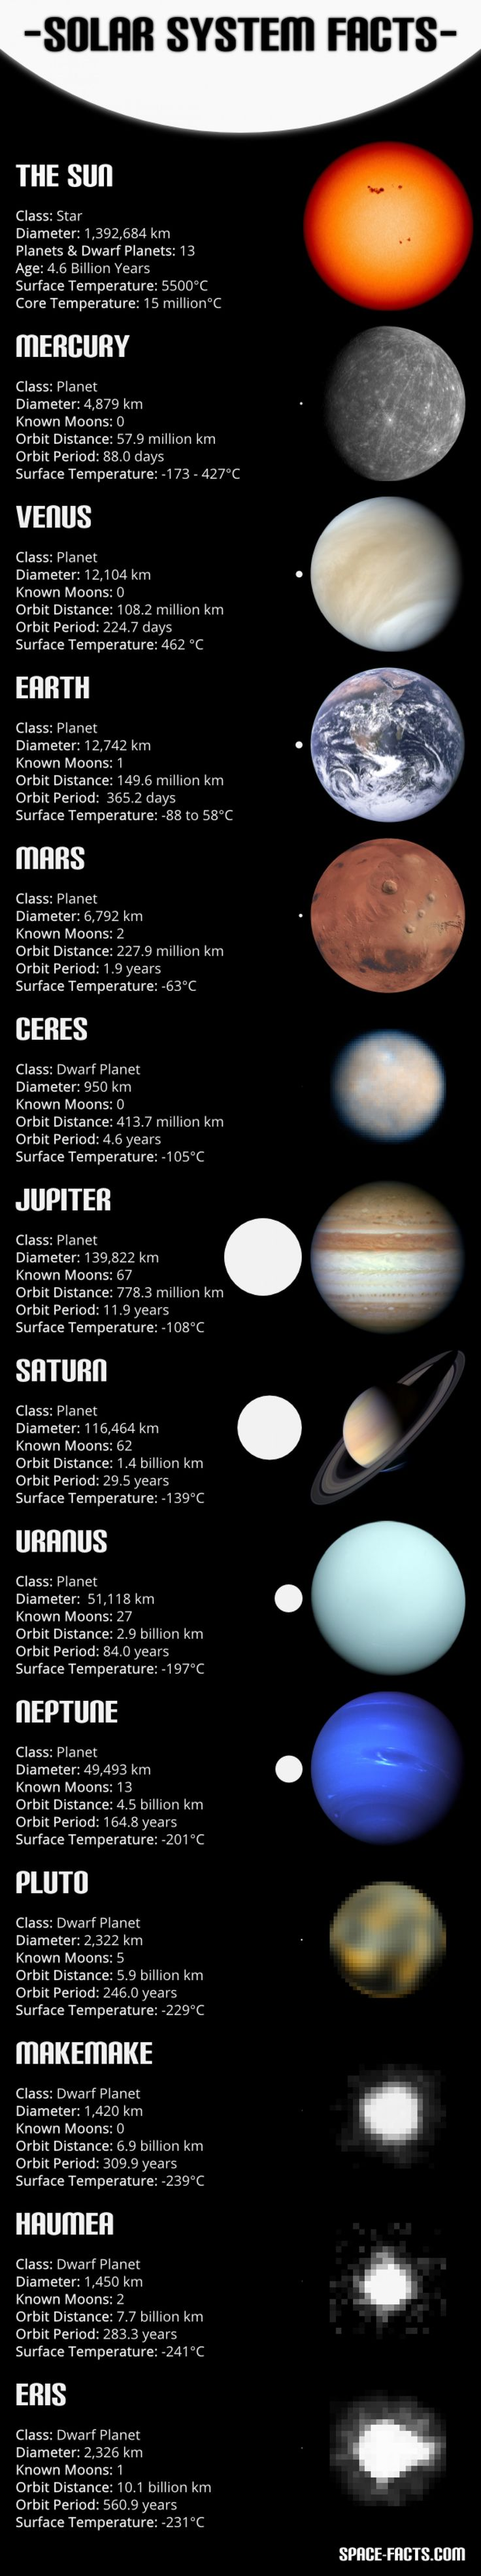 Solar System Facts Infographic | Astronomy/Space | Pinterest